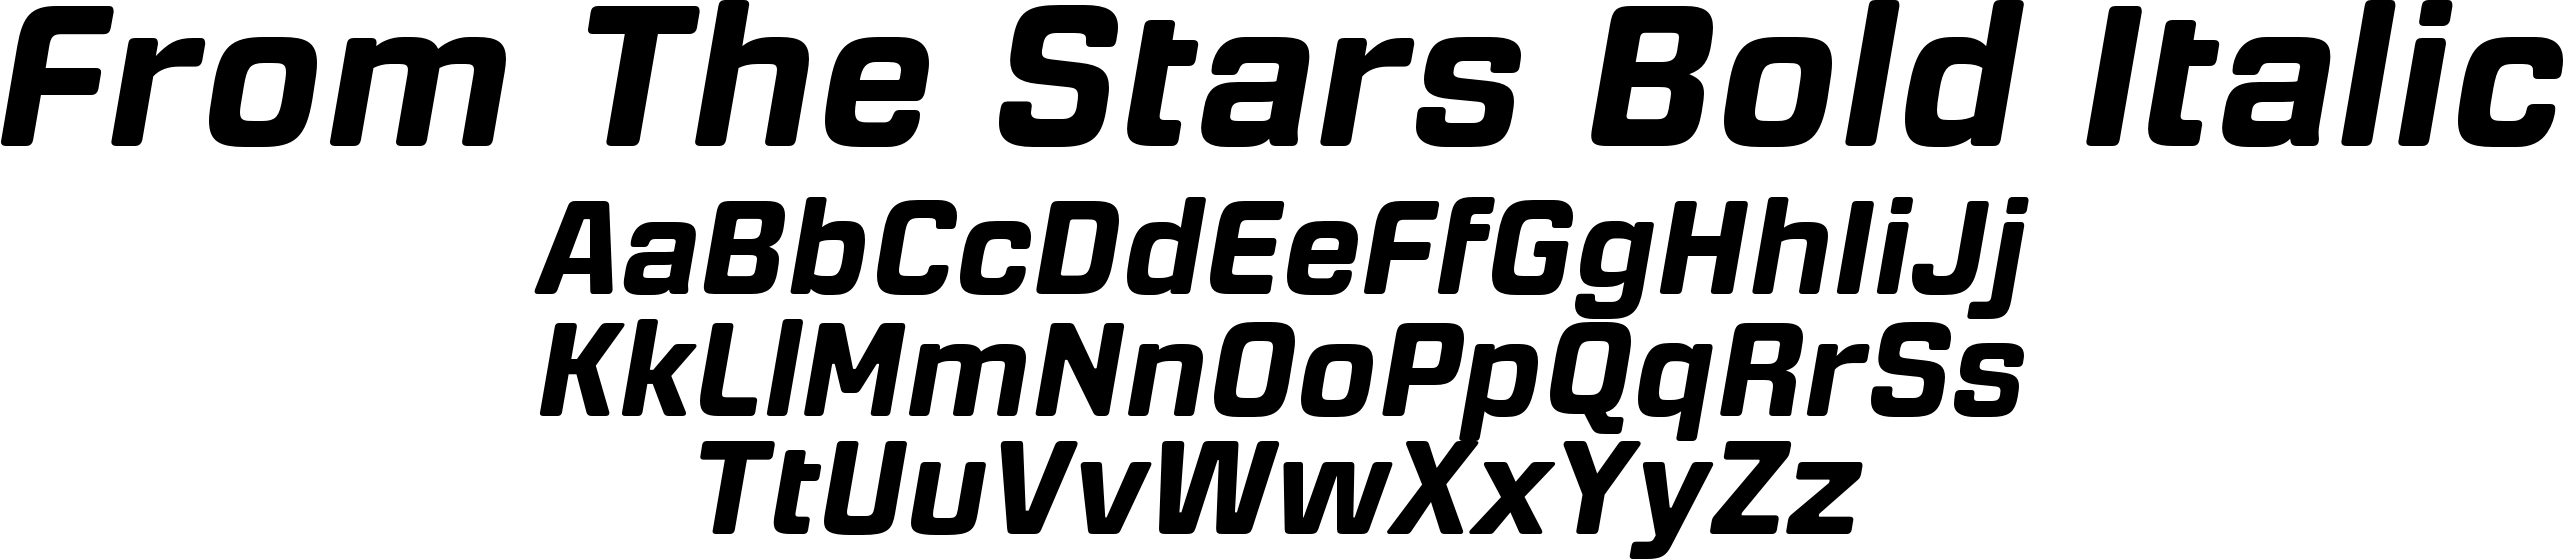 From The Stars Bold Italic